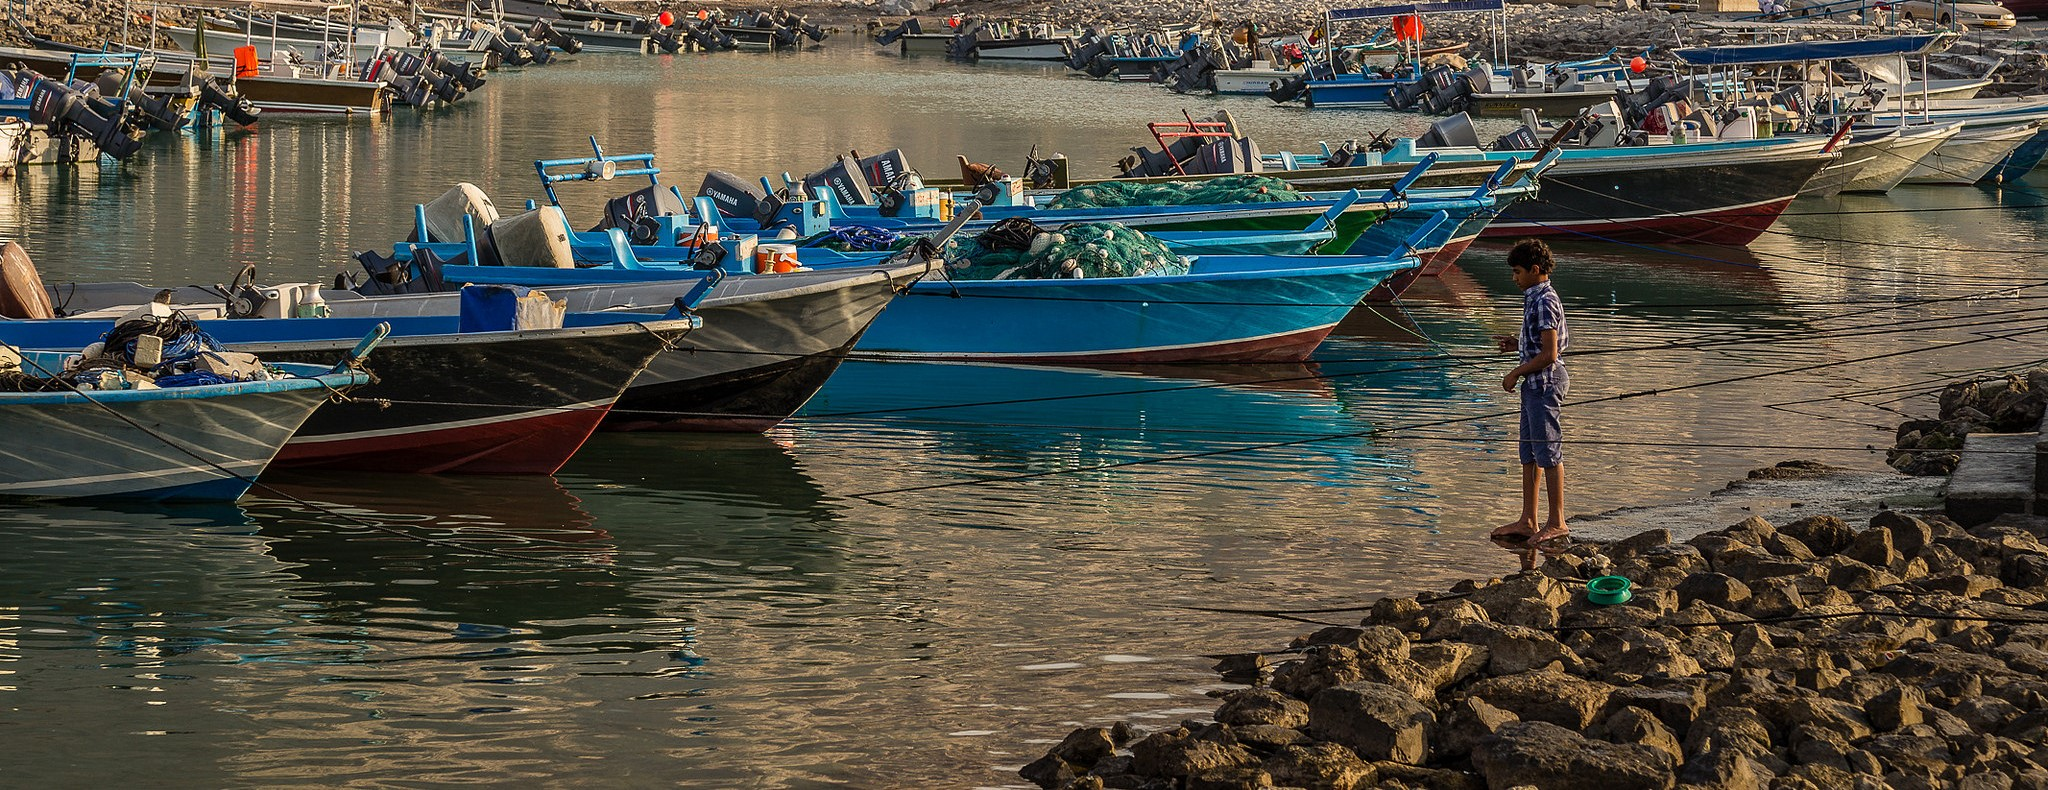 Boats in harbour at Khasab, Musandam, January 2017 (Photo: Phil Norton/Flickr)